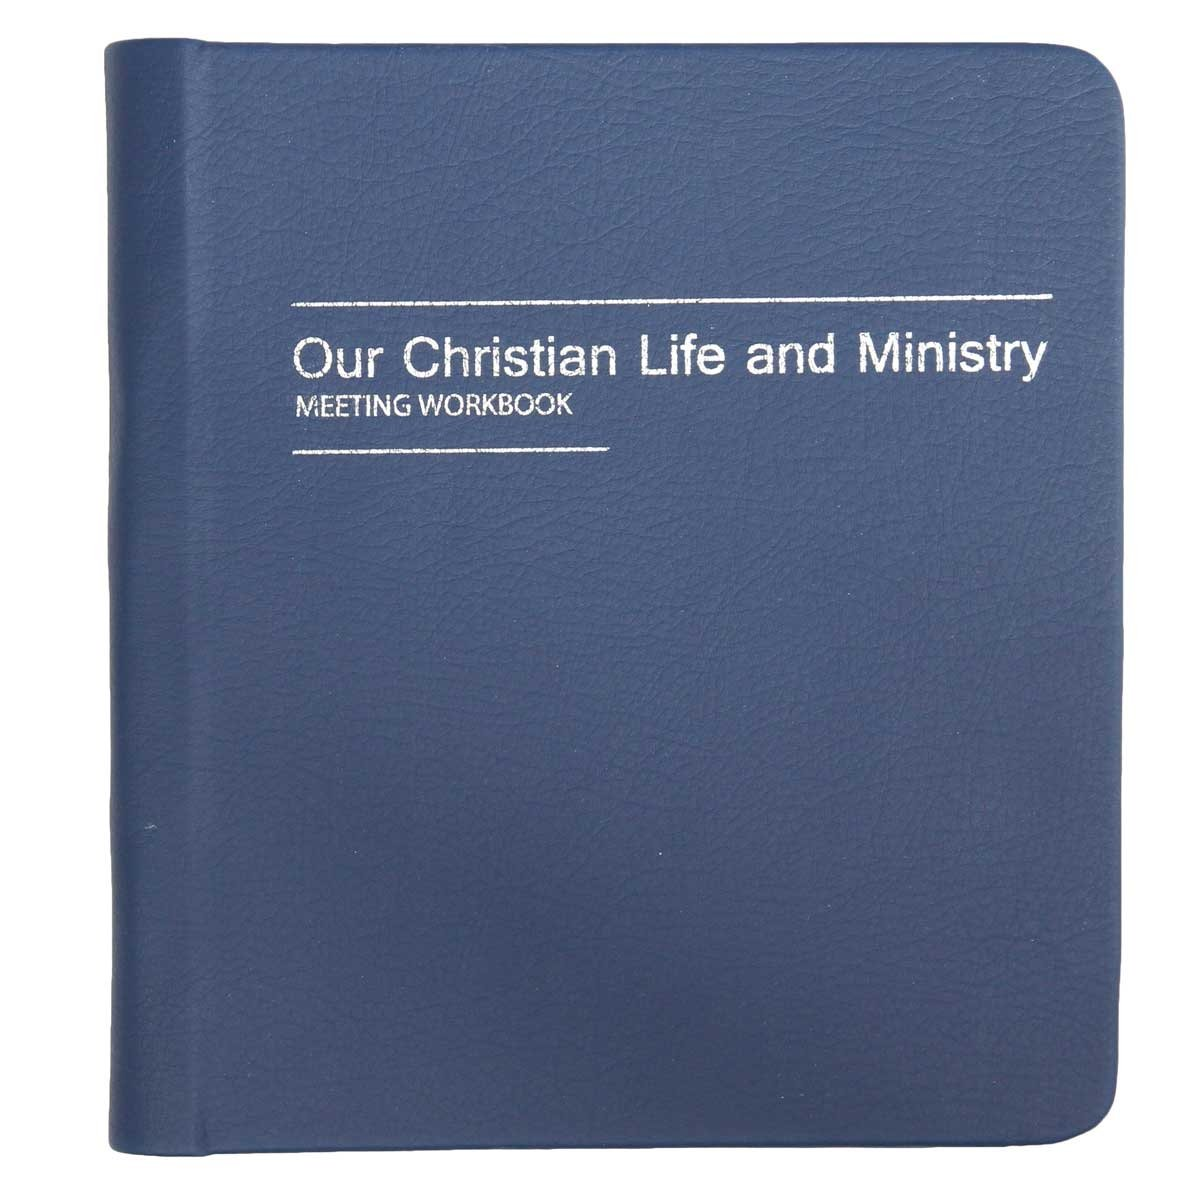 Workbooks christian workbooks for women : Amazon.com : Our Christian Life and Ministry - Meeting Workbook ...